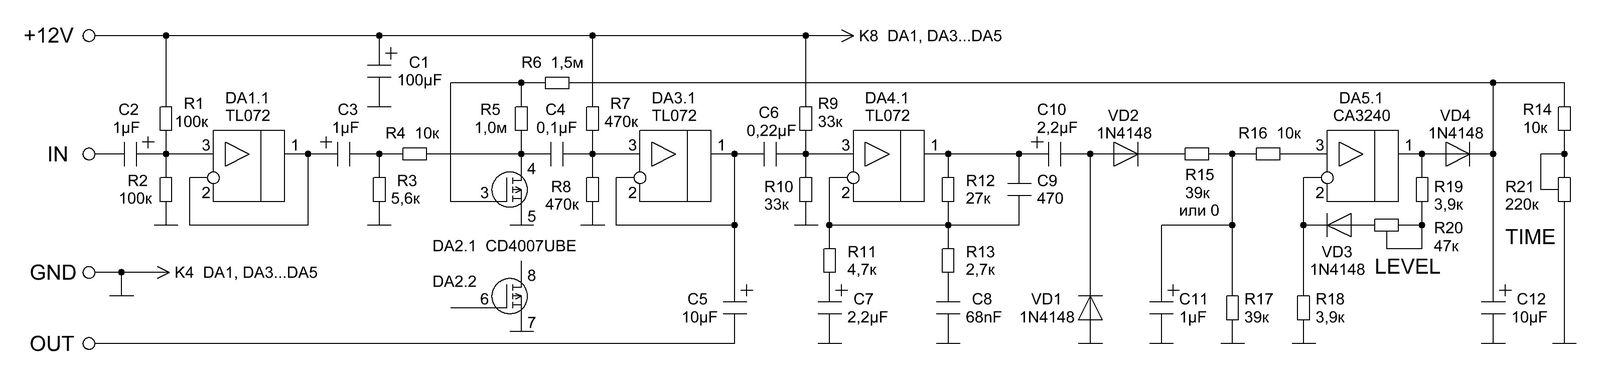 VRTP -> Volume Compressor Alesis Schematic on